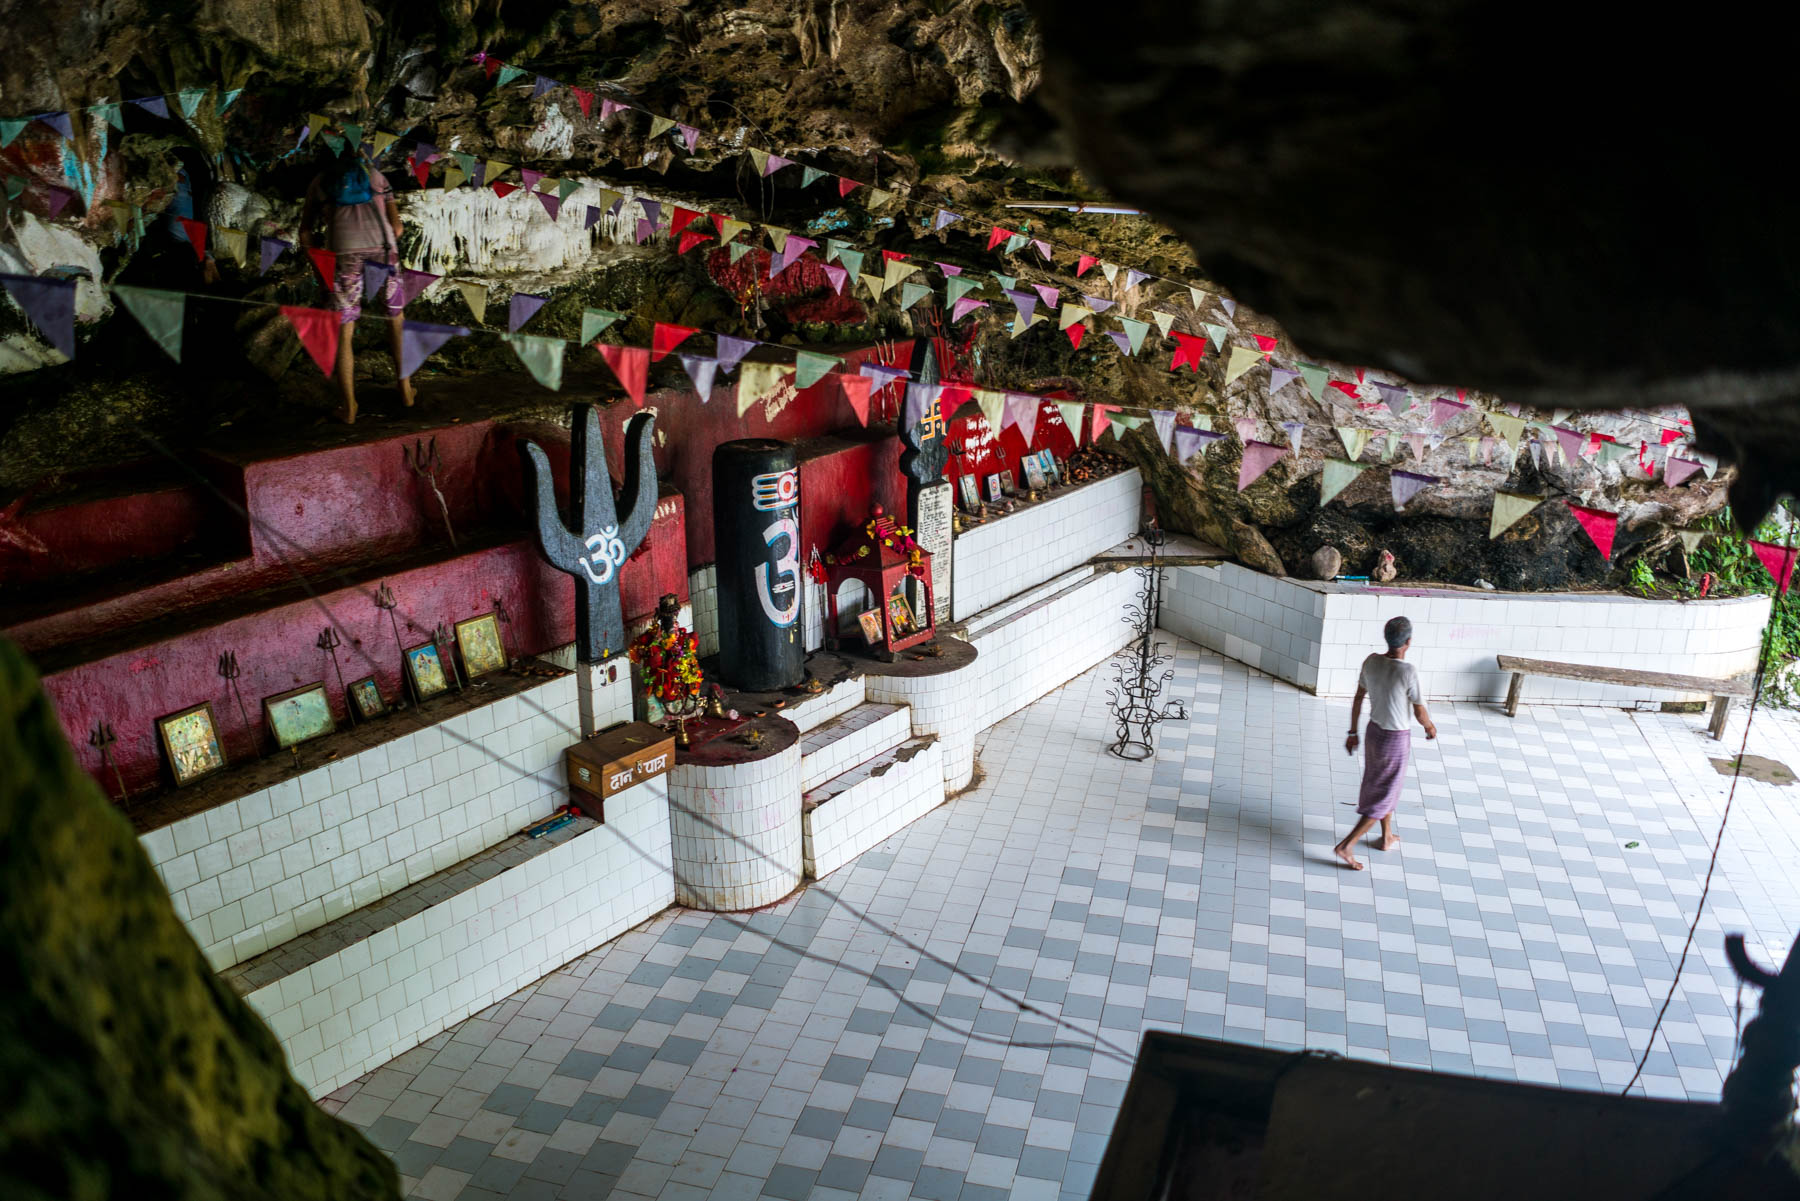 Backpacking in Arunachal Pradesh travel guide - the interior of Mengha cave temple in Daporijo - Lost With Purpose